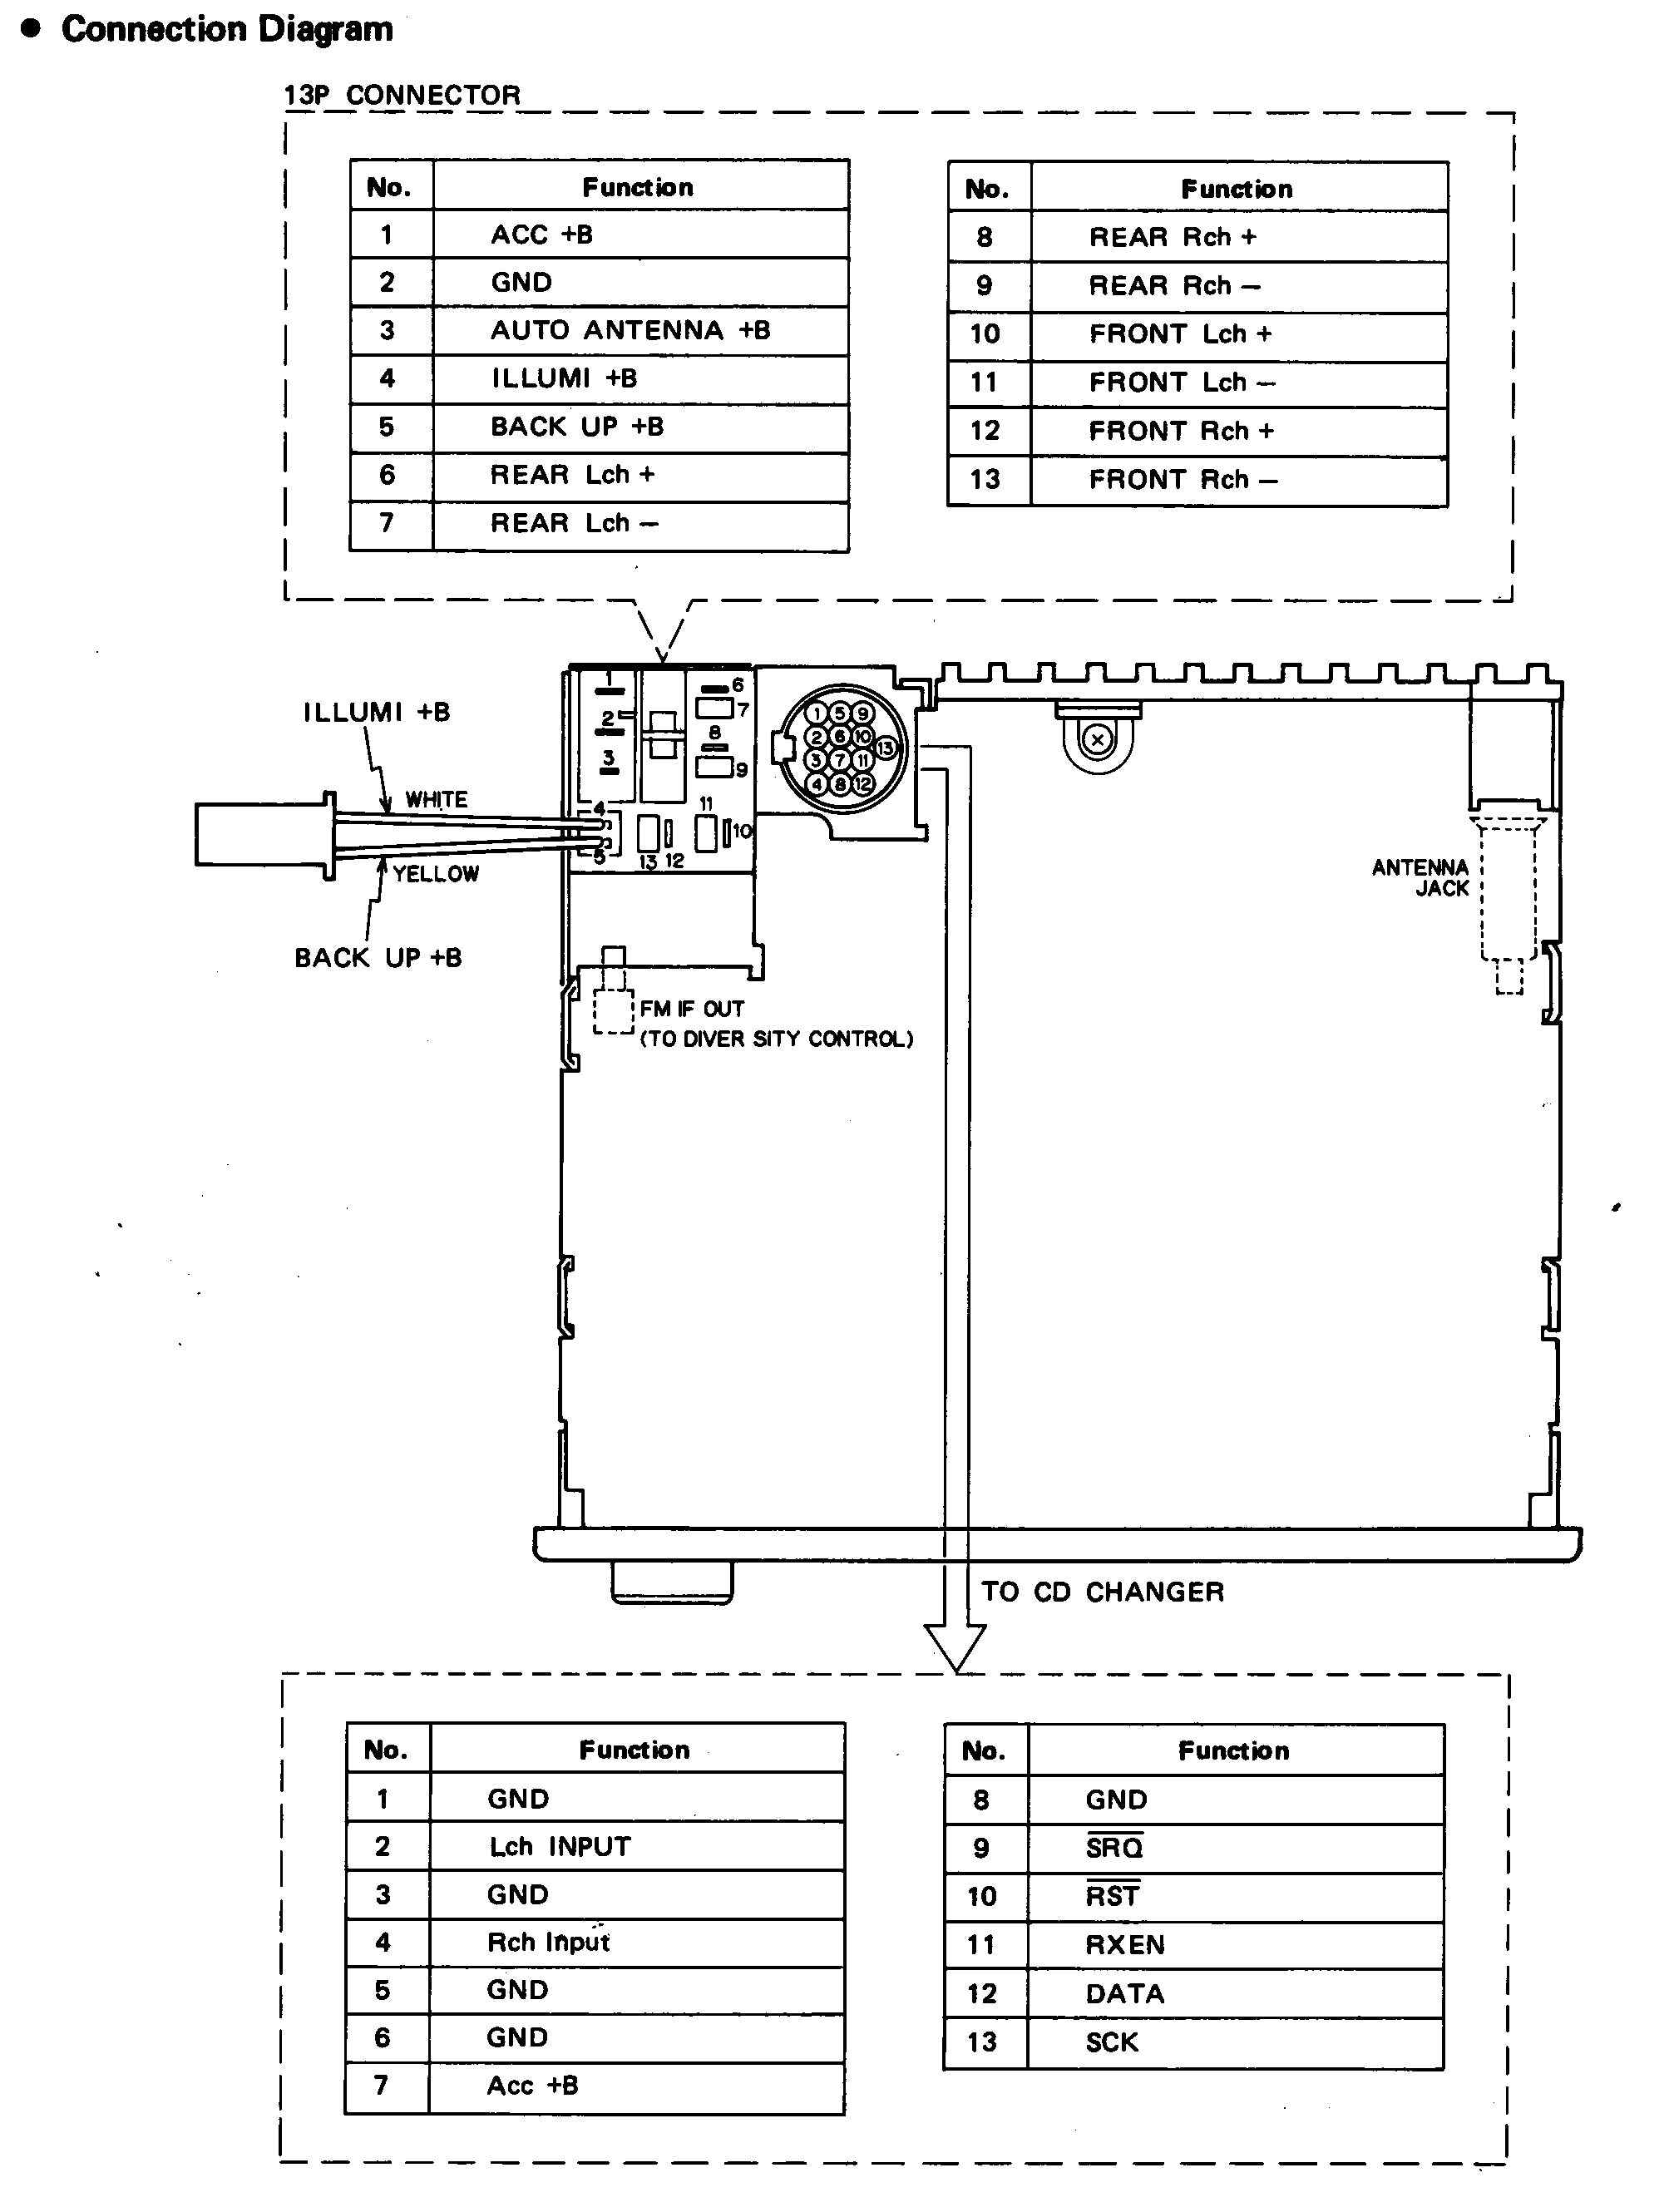 Car Stereo Speaker Wiring Diagram Just Another Blog Pioneer Schematic Bose 800 Pa Simple Diagrams Rh 5 4 Zahnaerztin Carstens De